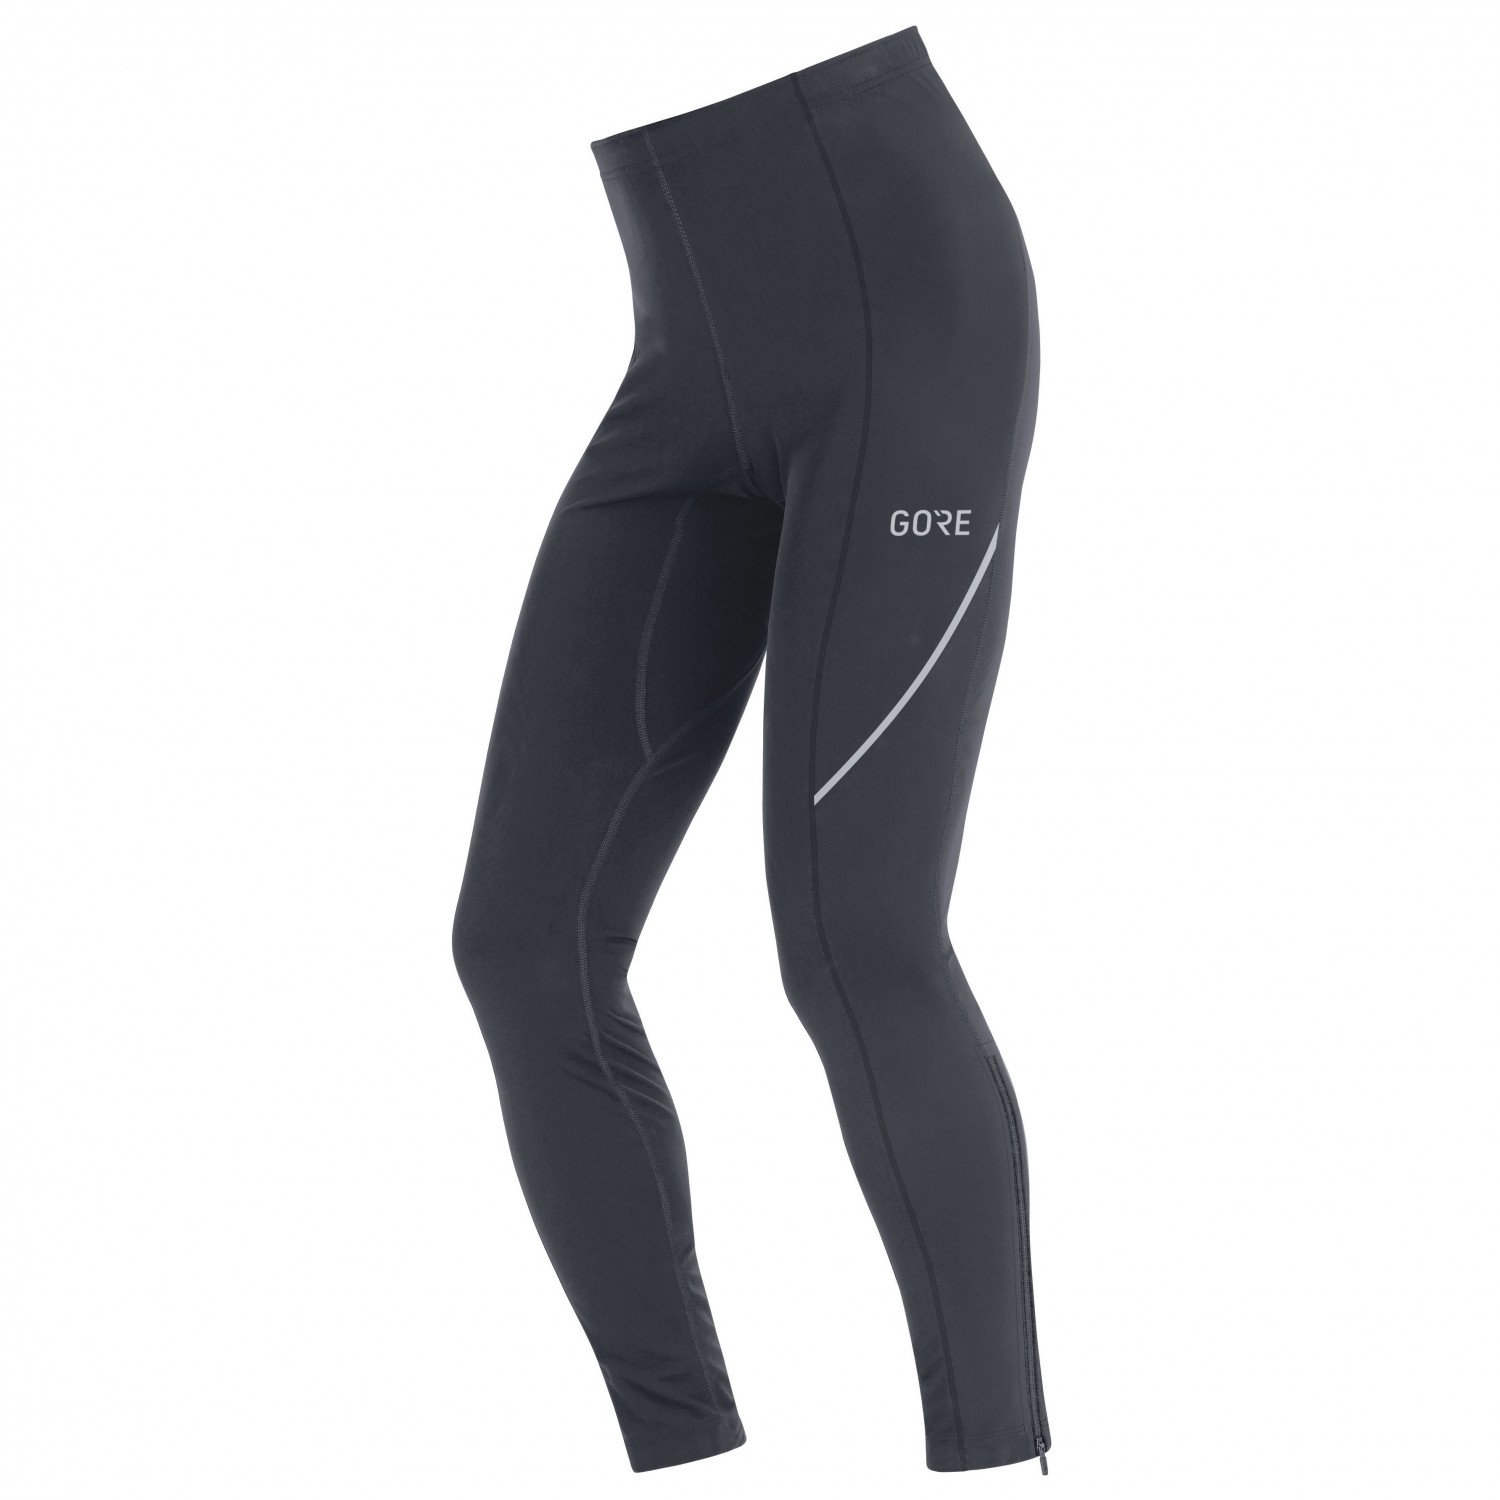 0656cb6cee2d7c GORE Wear R3 Thermo Tights - Running trousers Men's | Buy online ...